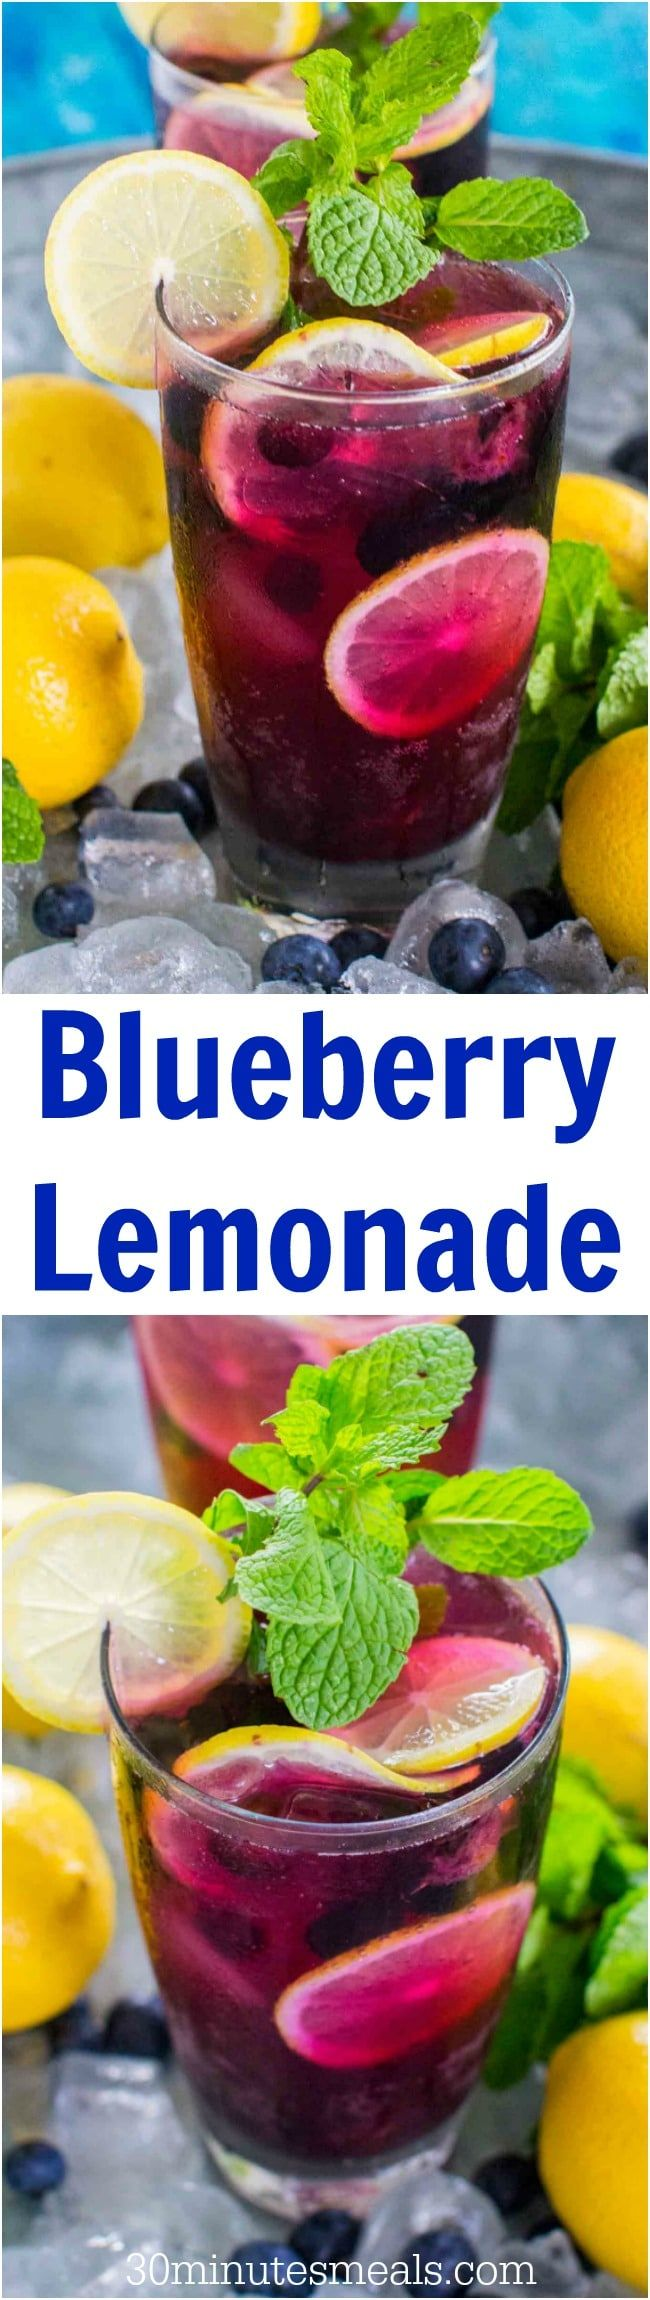 Sweet and refreshing Blueberry Lemonade tastes delicious and refreshing year round. Made easy with sweet blueberry simple syrup and fresh lemon juice. #lemonade #blueberry